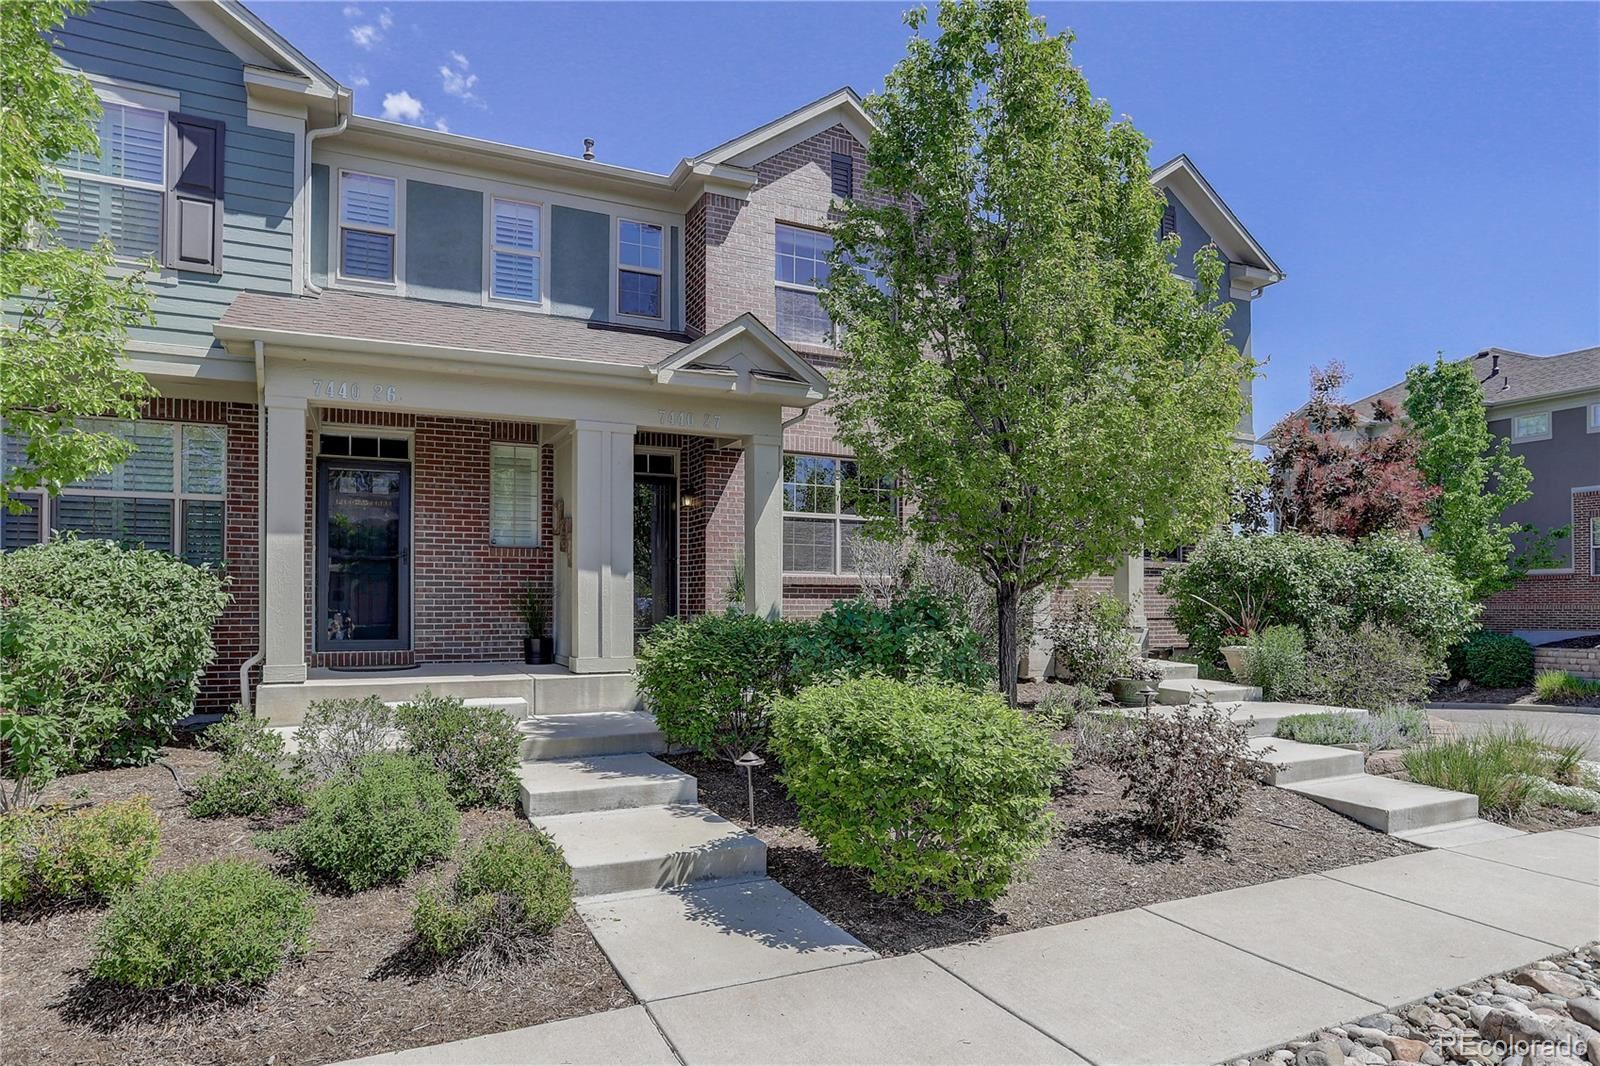 7440 E 8th Avenue #27, Denver, CO 80230 - #: 4865120